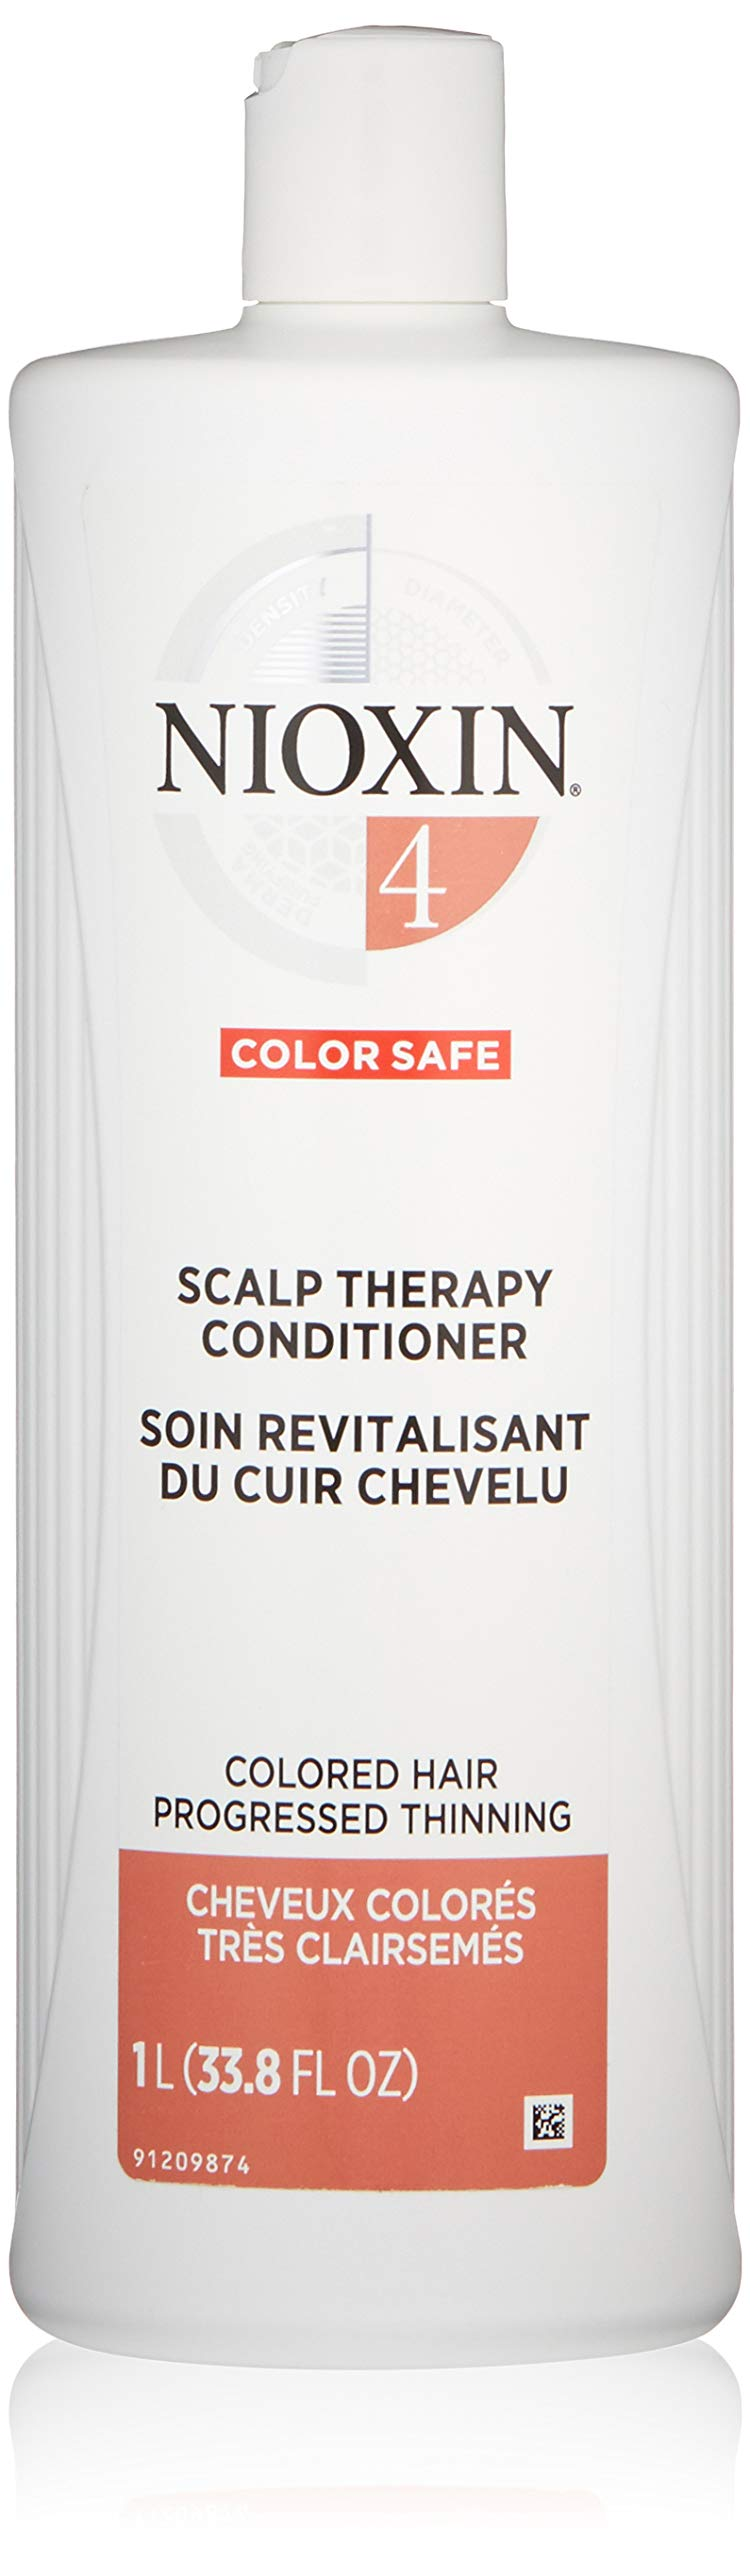 Nioxin Scalp Therapy Conditioner, System 4 (Color Treated Hair/Progressed Thinning), 33.8 Fl Oz by Nioxin (Image #1)